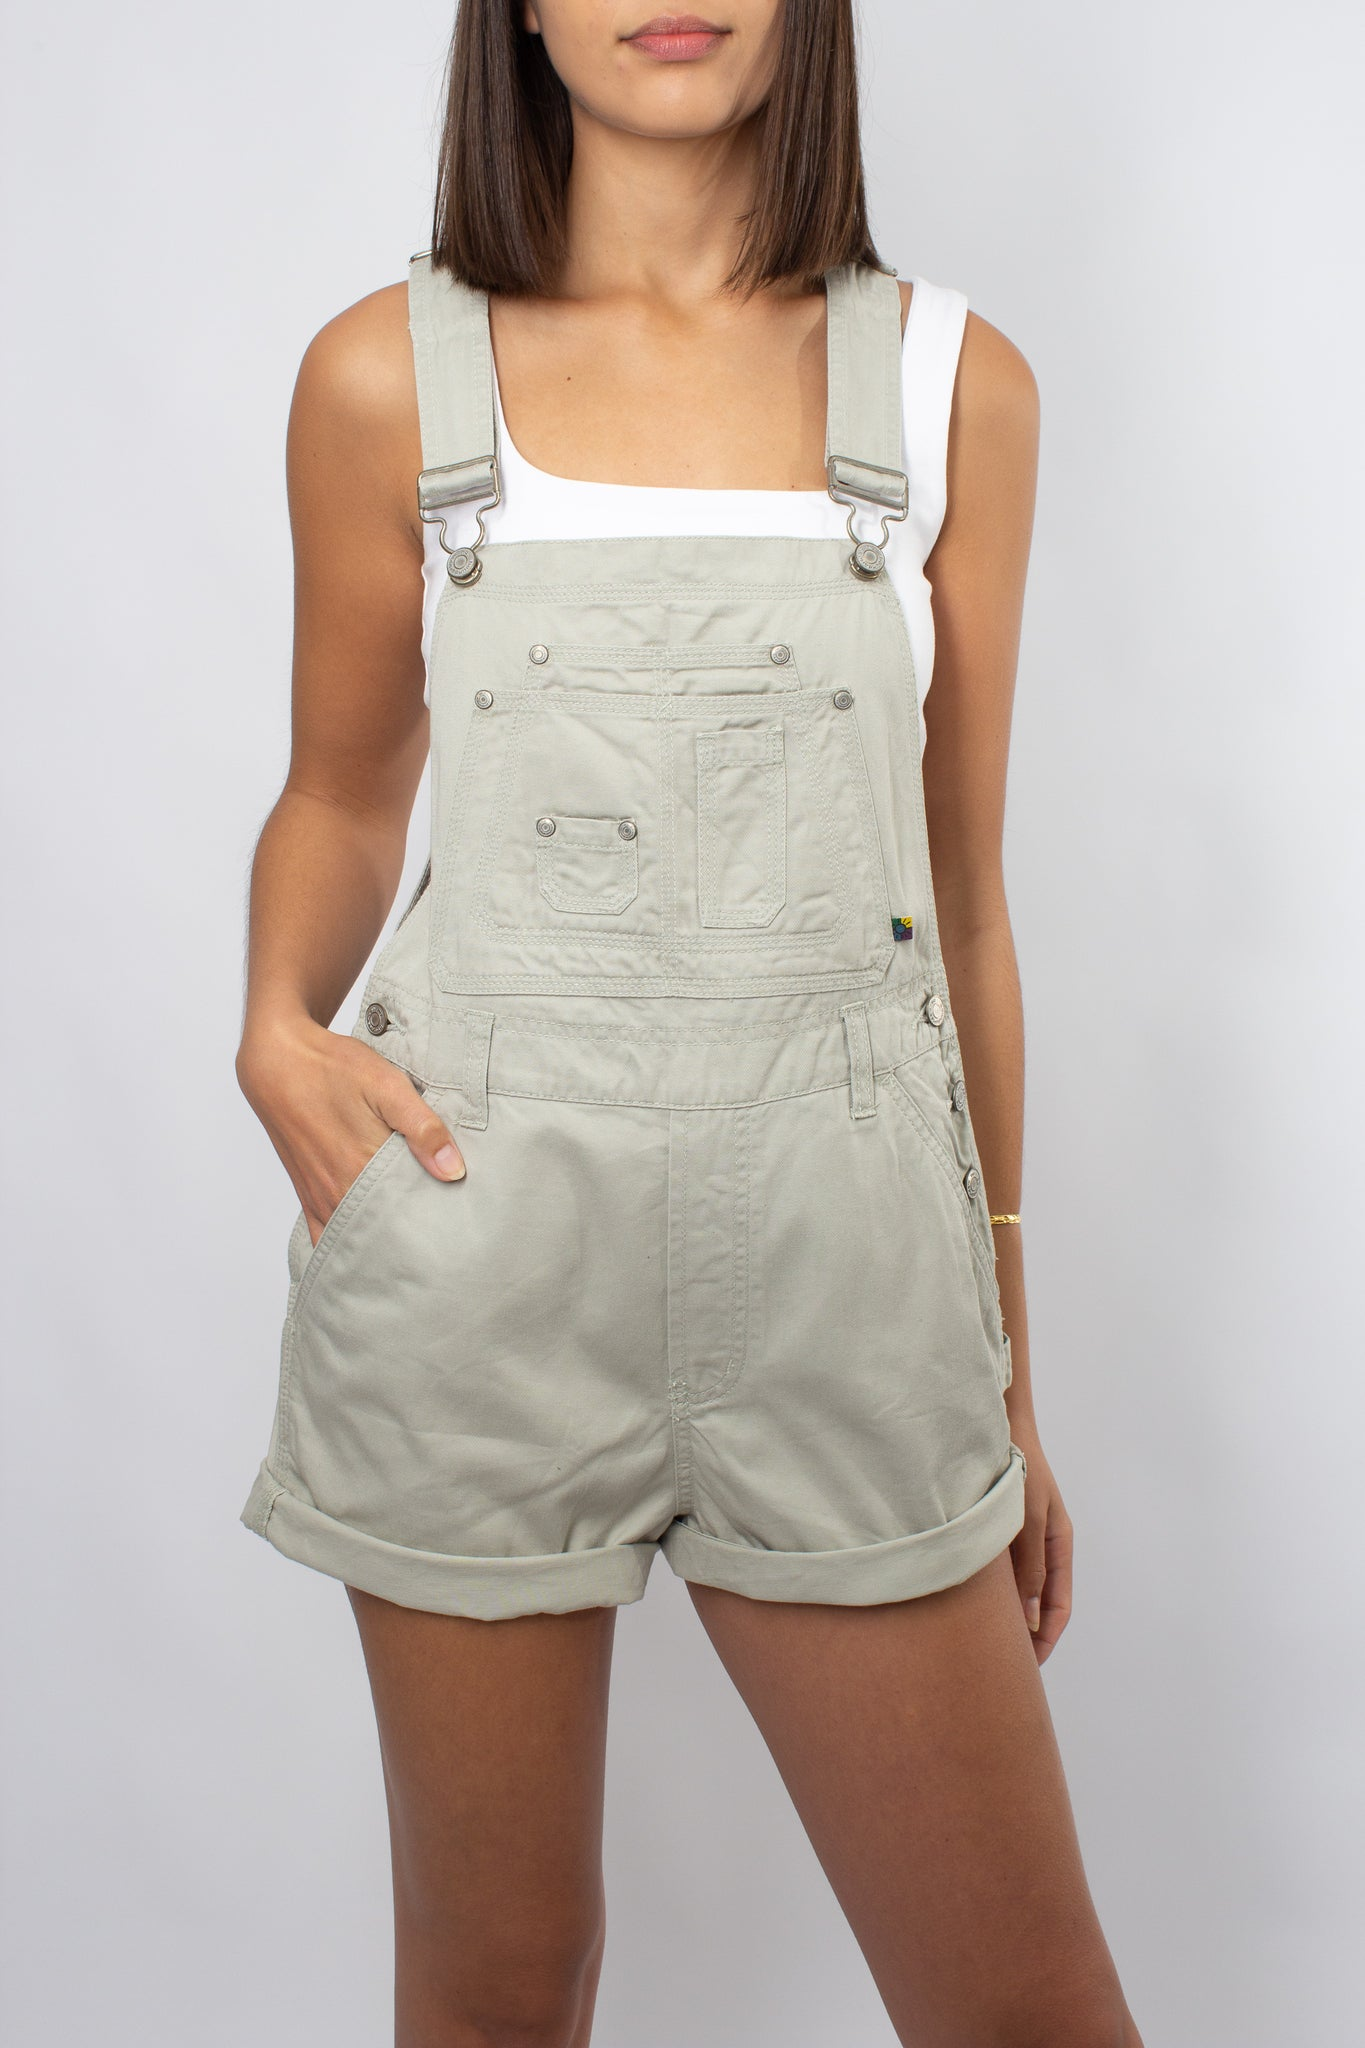 Light Olive Green Denim Overalls - Size M & L